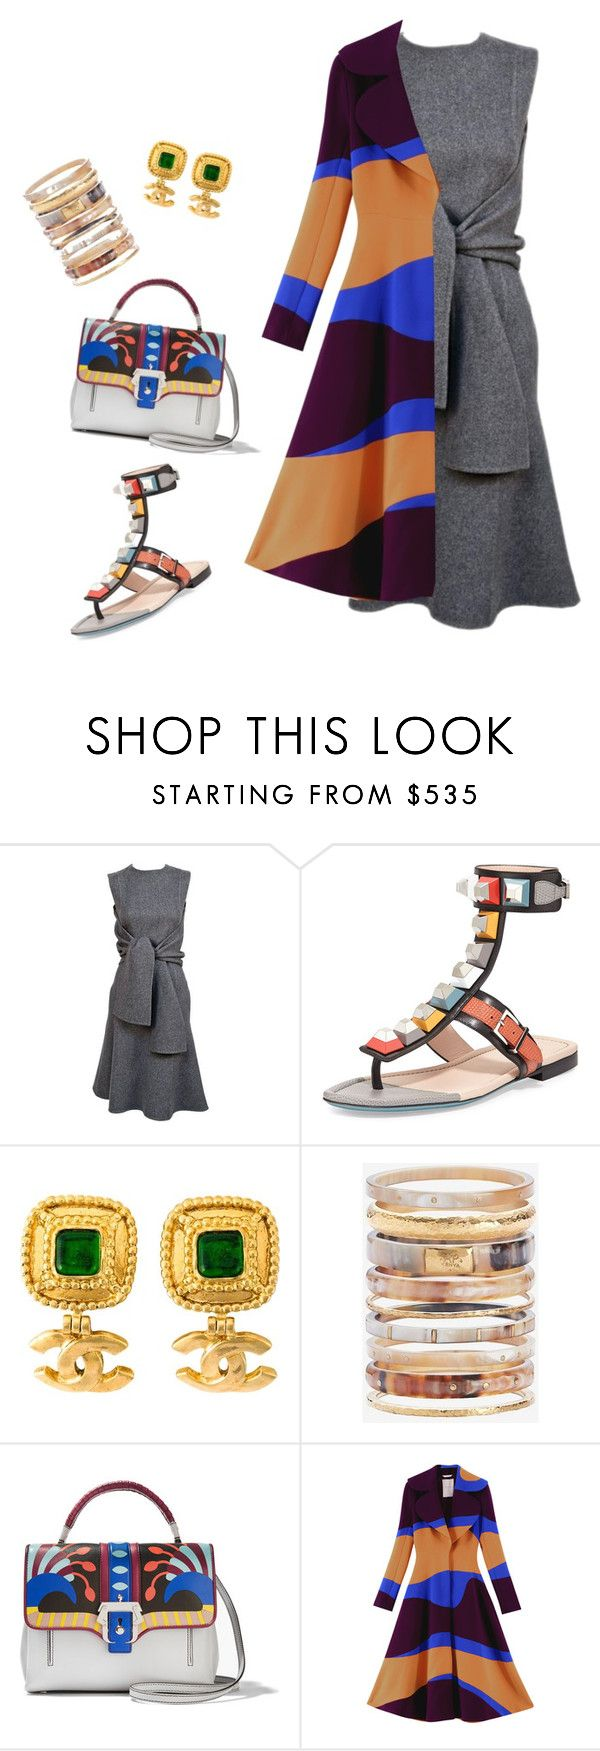 """Something crazy"" by yourownart ❤ liked on Polyvore featuring Fendi, Chanel, Ashley Pittman, Paula Cademartori, Roksanda, women's clothing, women, female, woman and misses"